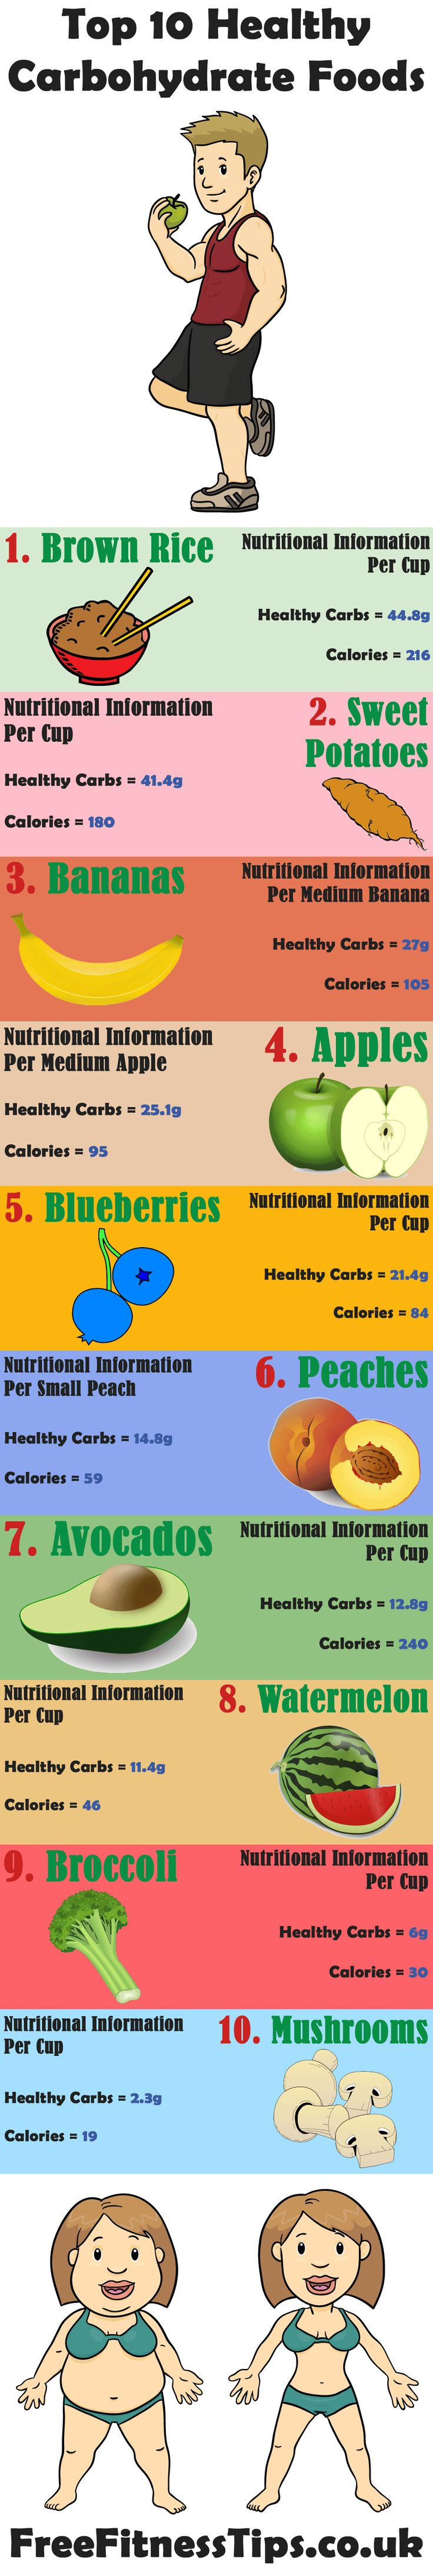 Top 10 Healthy Carbohydrate Foods Infographic